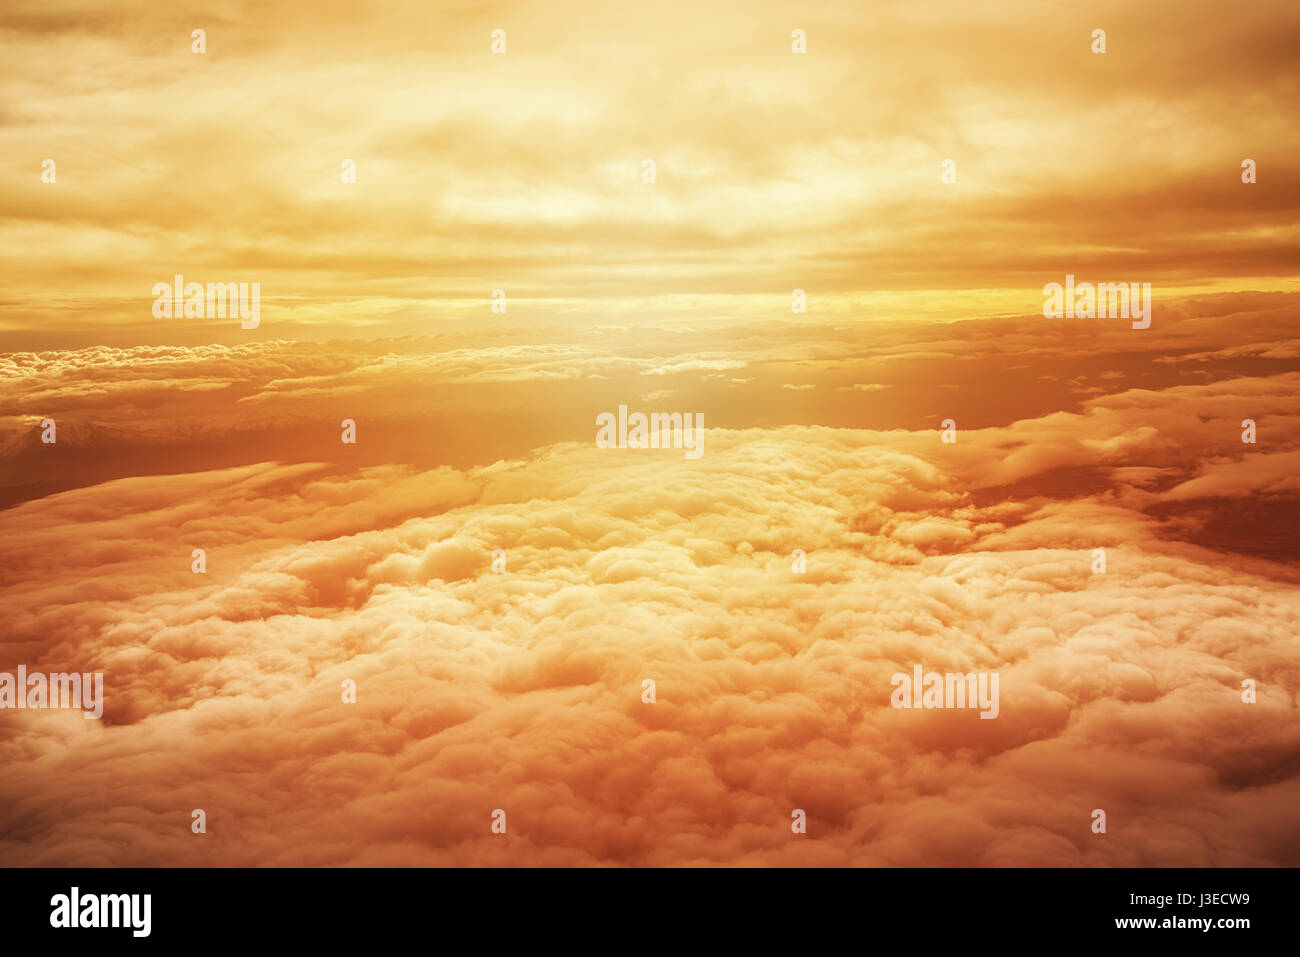 Spectacular view of a sunset above the clouds from the top of the mountain - Stock Image